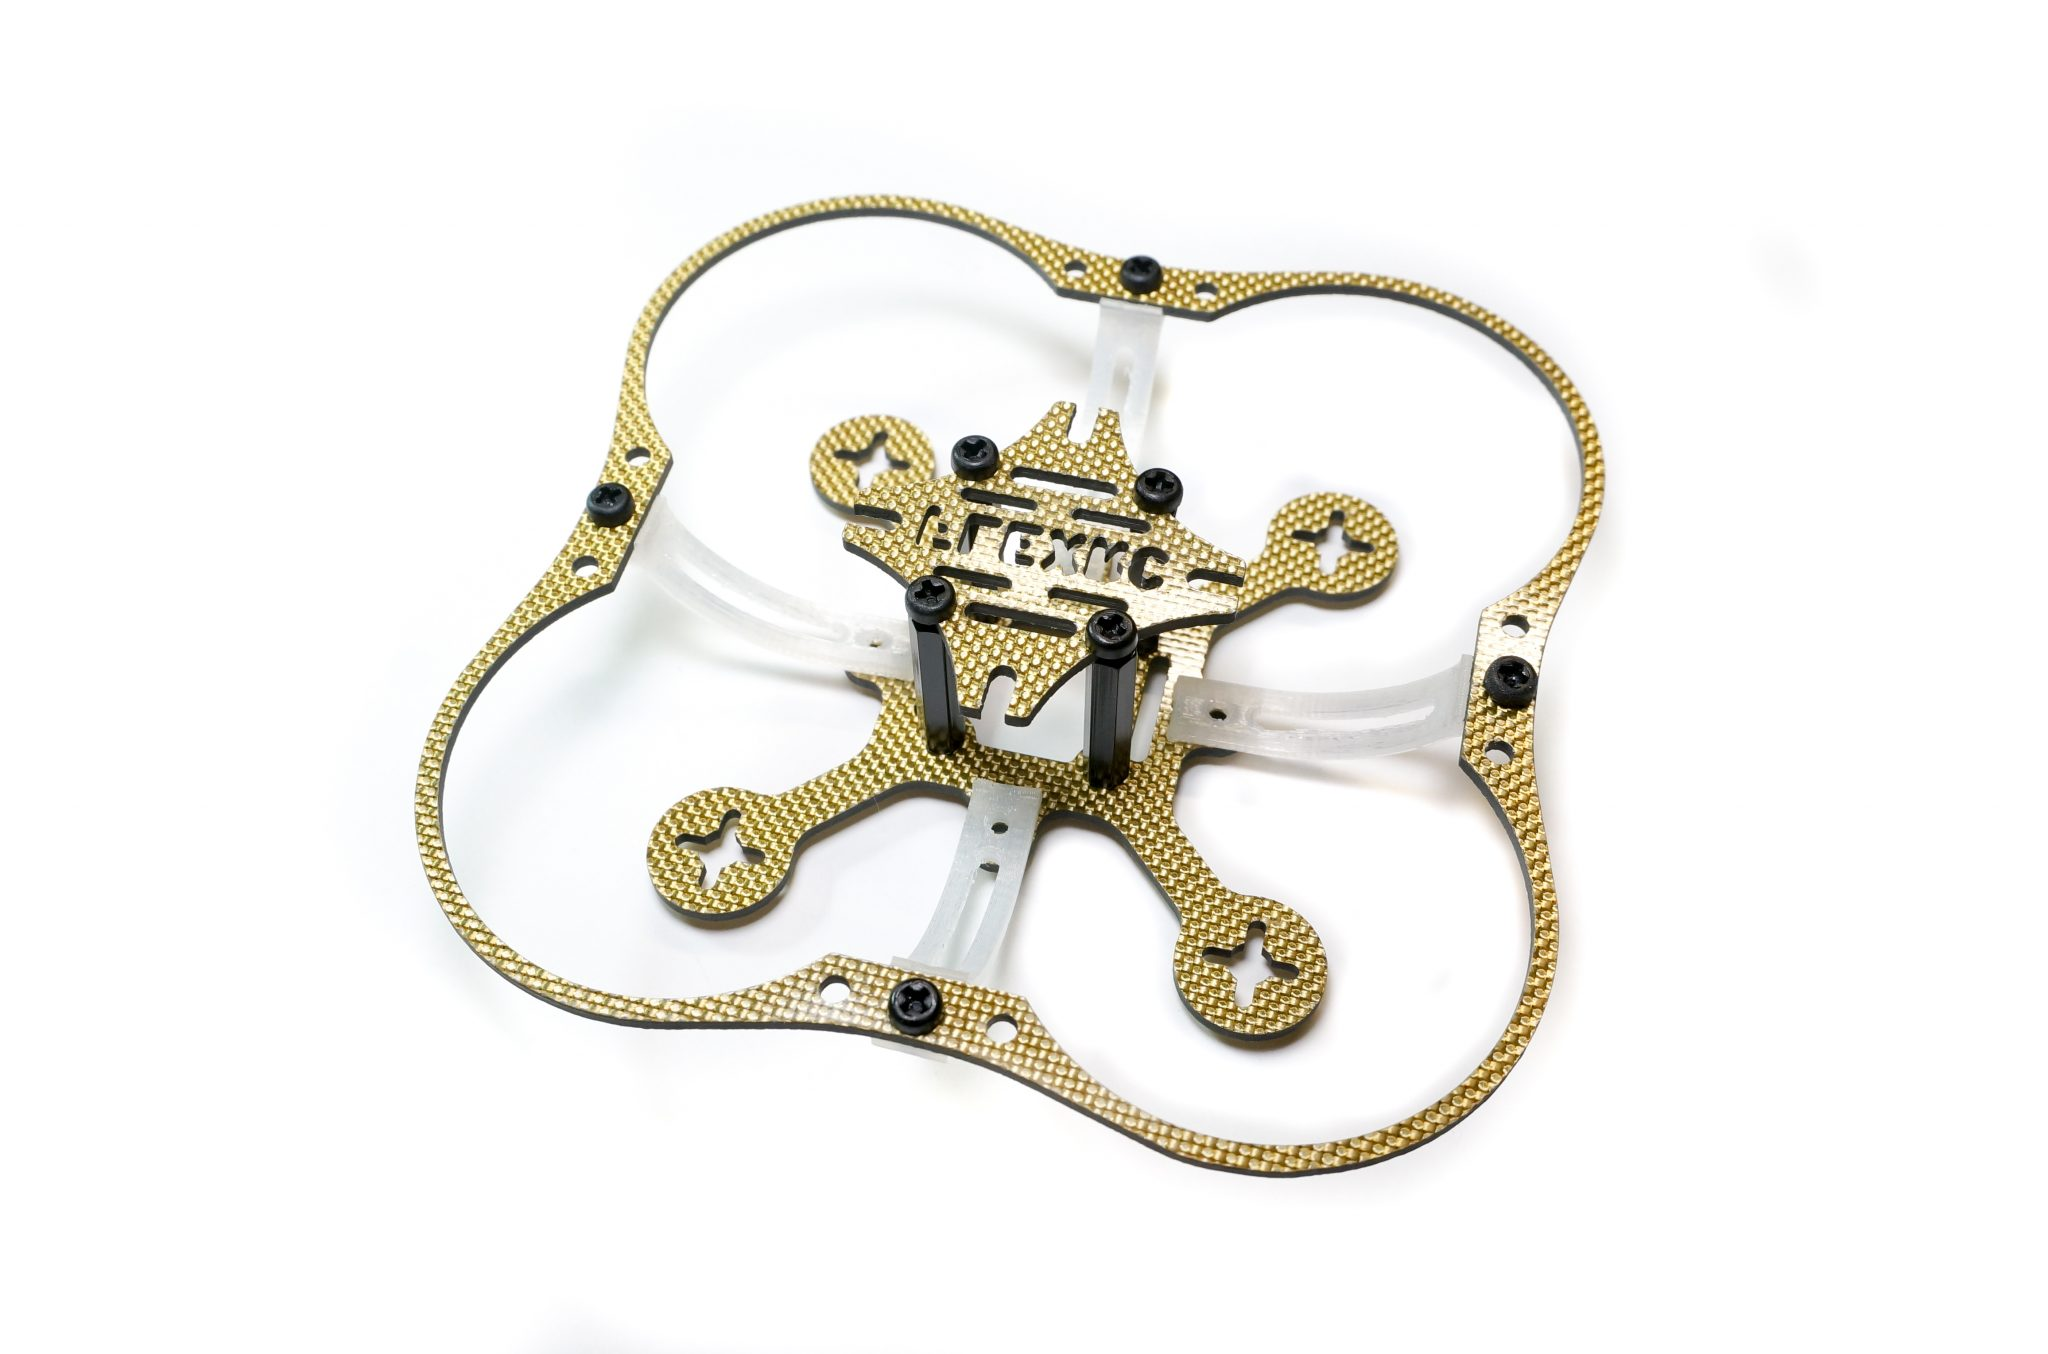 Pico X - Golden Eye - FPV Racing Drone Frame